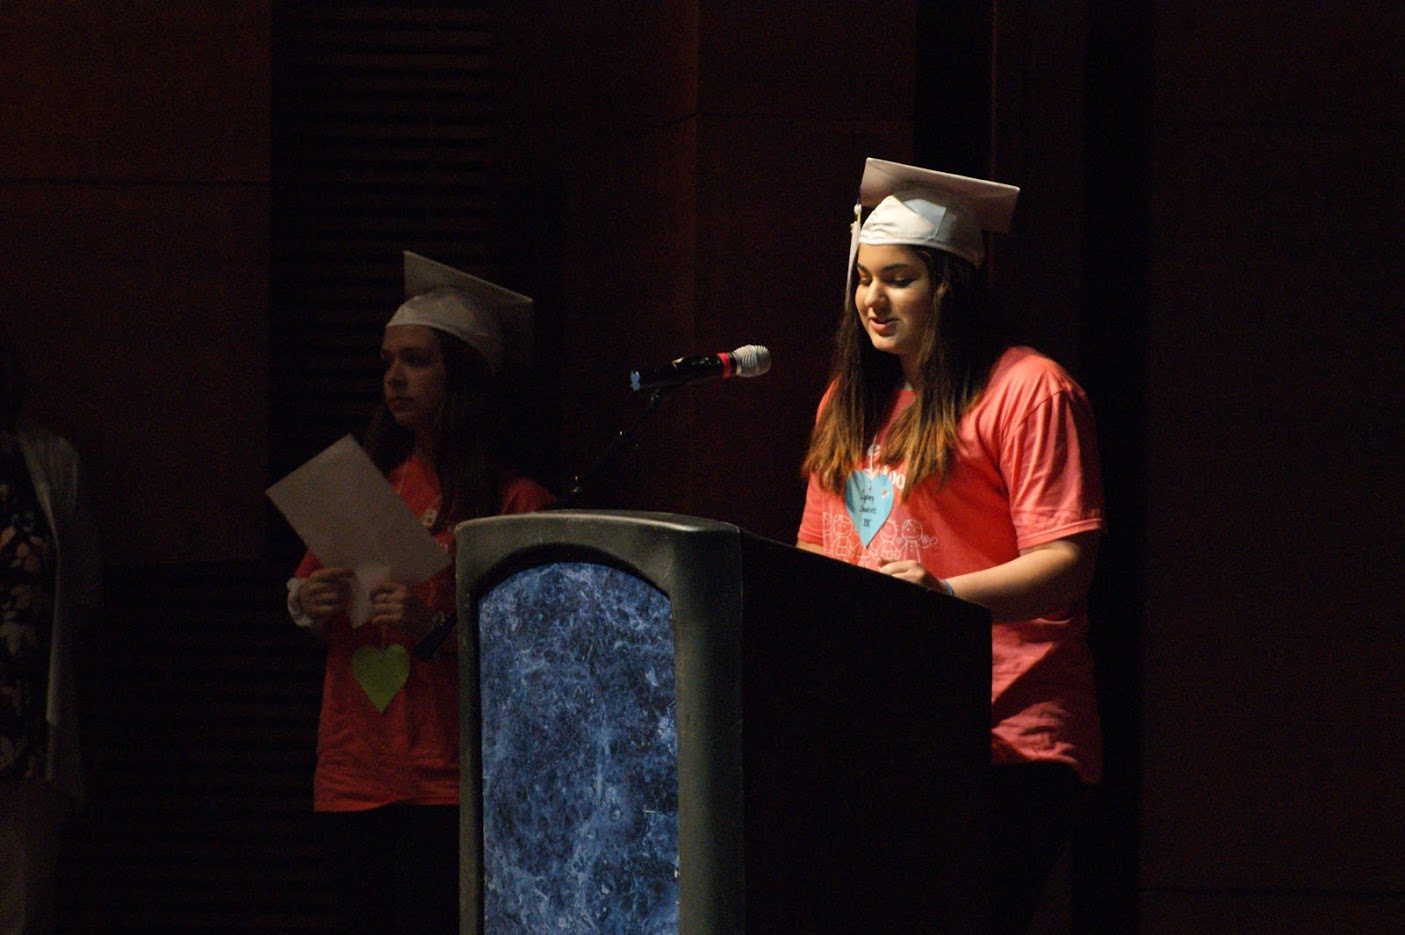 Sydney Shadrick, senior, gave a speech on the lessons she learned throughout her 8 semesters in the child development program. Shadrick will be majoring in Special Education this fall at Appalachian State University.